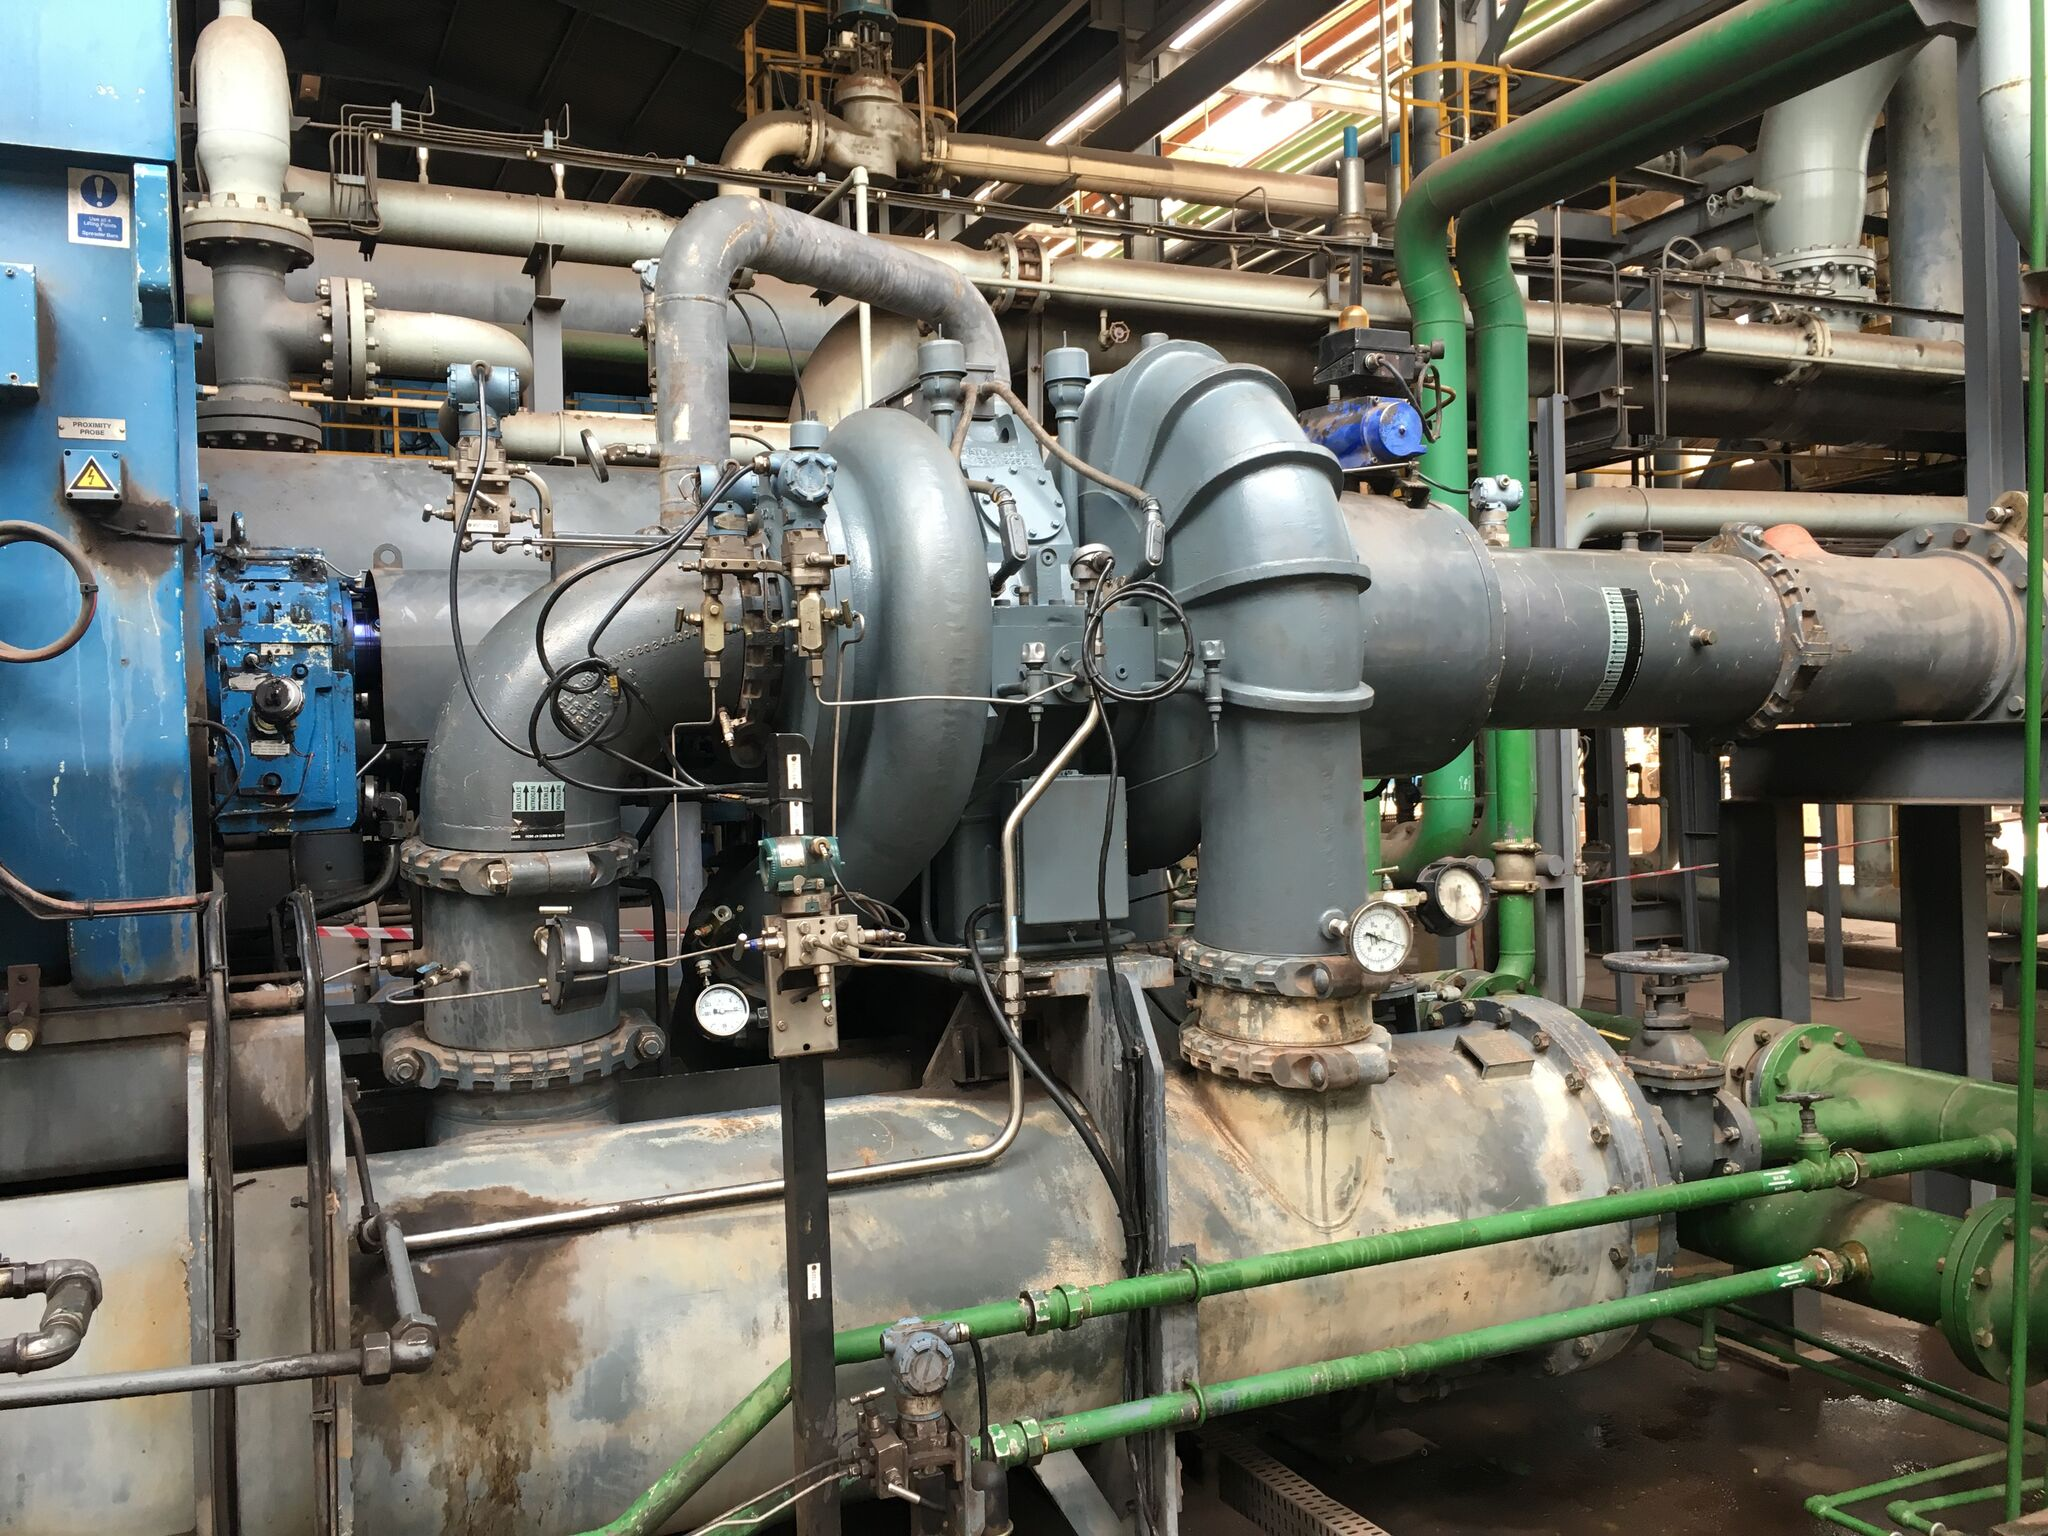 Refurbishment and commissioning of integrally geared compressor